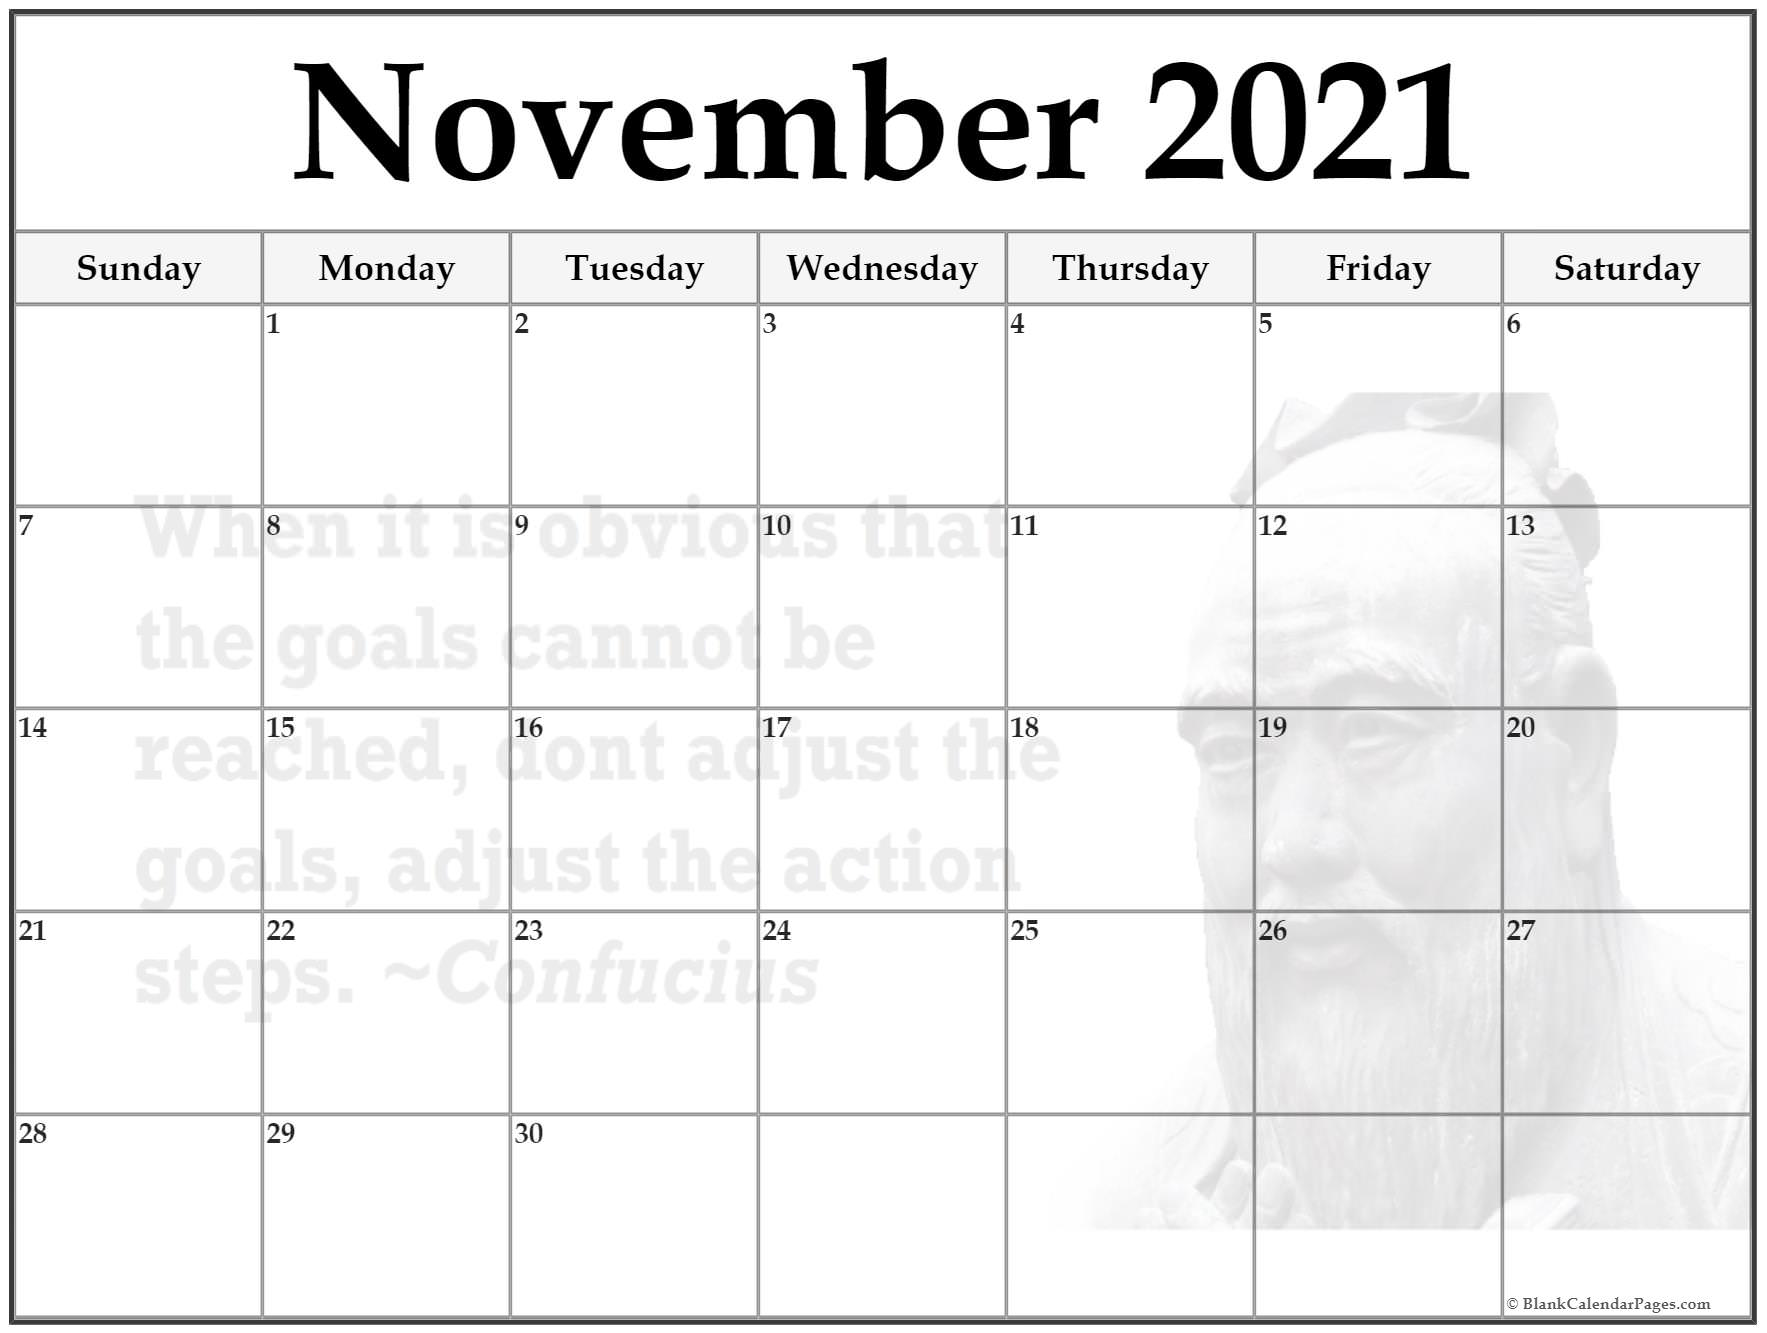 November 2020 monthly calendar template. When it is obvious that the goals cannot be reached, don't adjust the goals, adjust the action steps ~Confucius